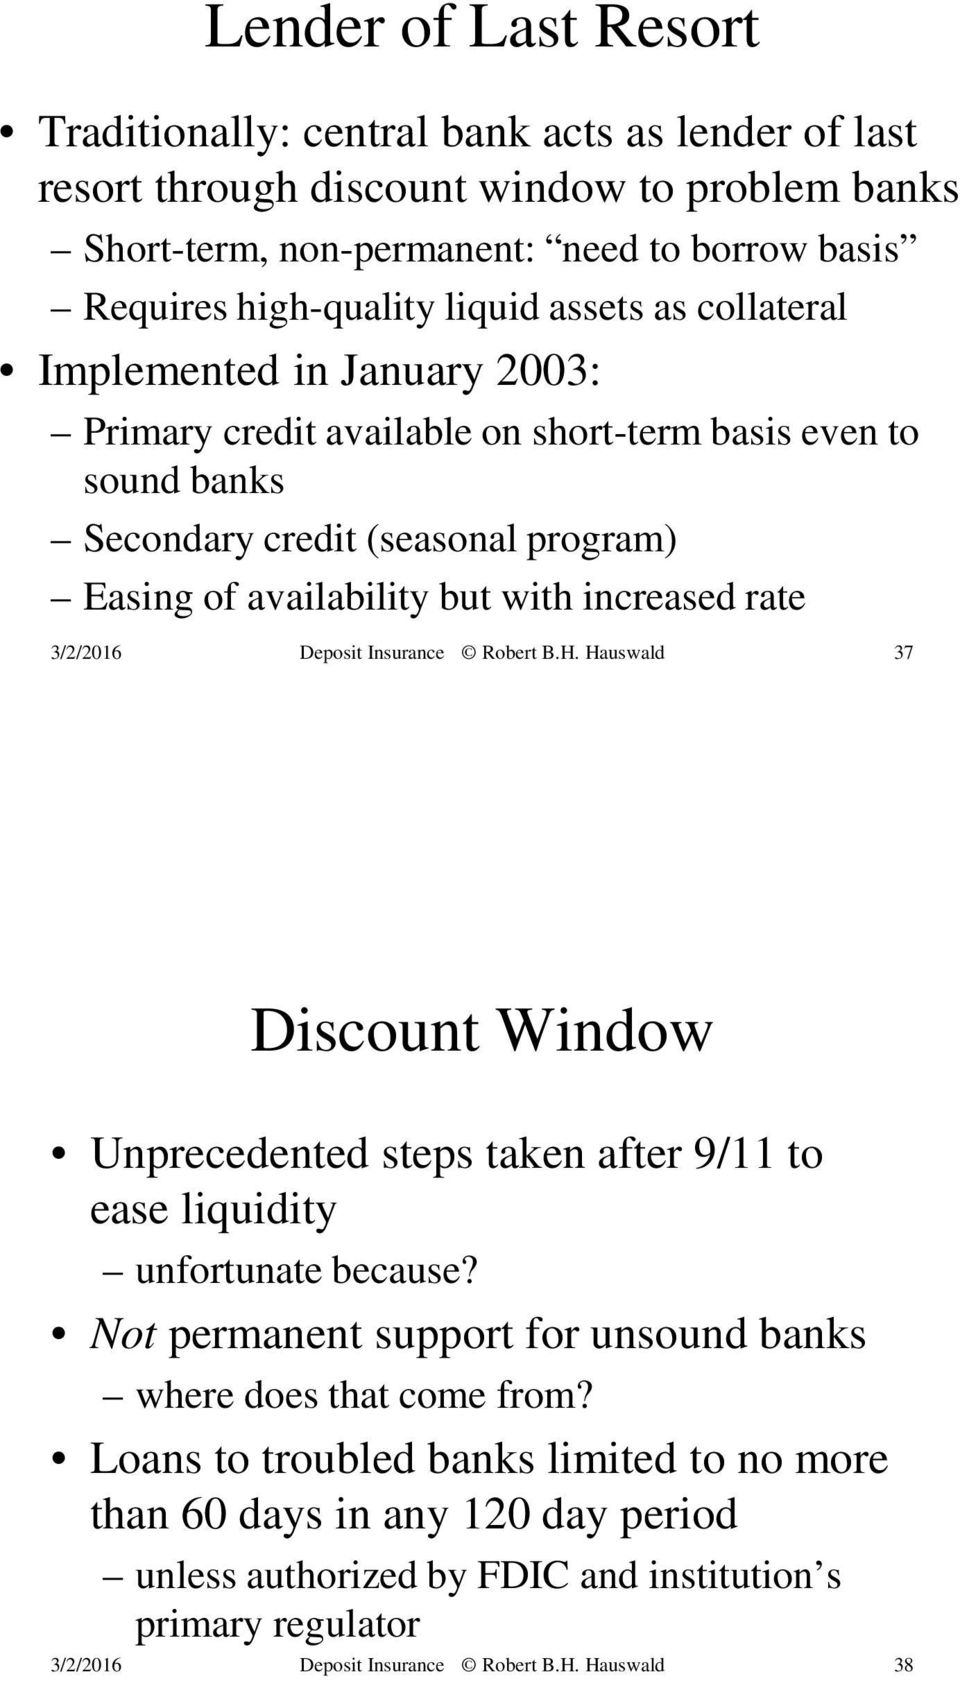 program) Easing of availability but with increased rate 37 Discount Window Unprecedented steps taken after 9/11 to ease liquidity unfortunate because?